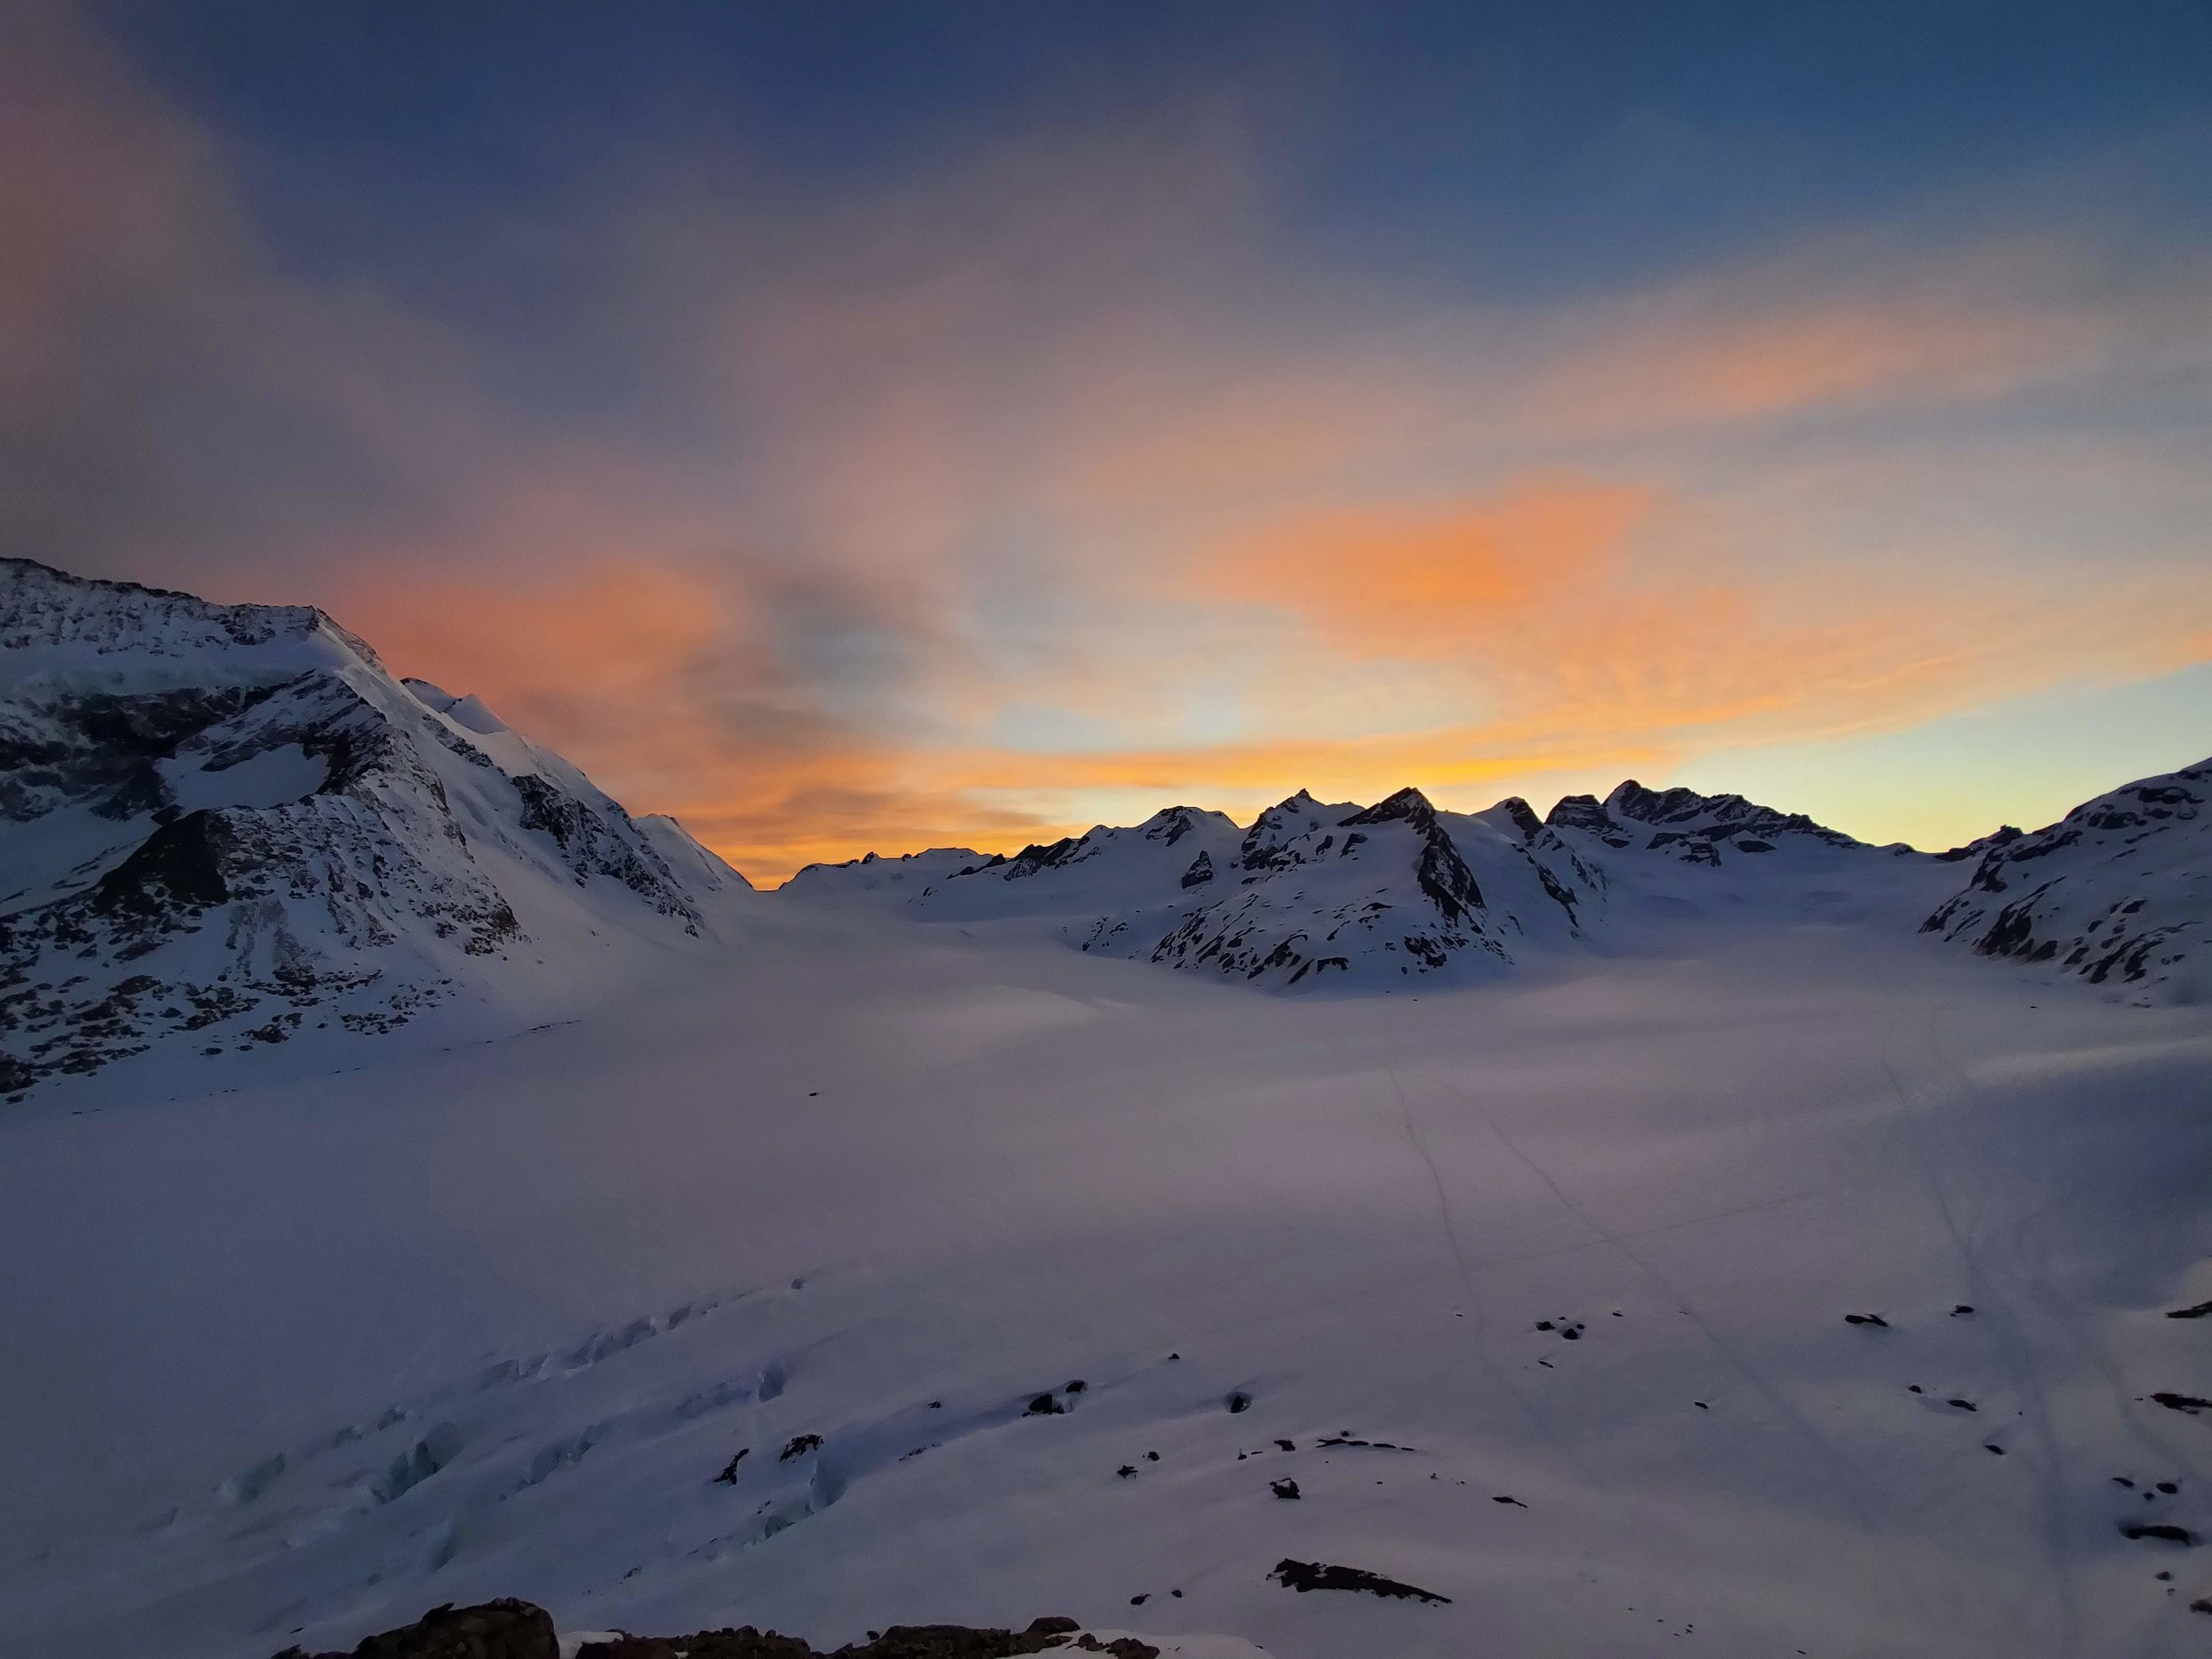 Sunset over the Bernese Alps from the deck of the hut. Early to early to rise for the next day's adventures.